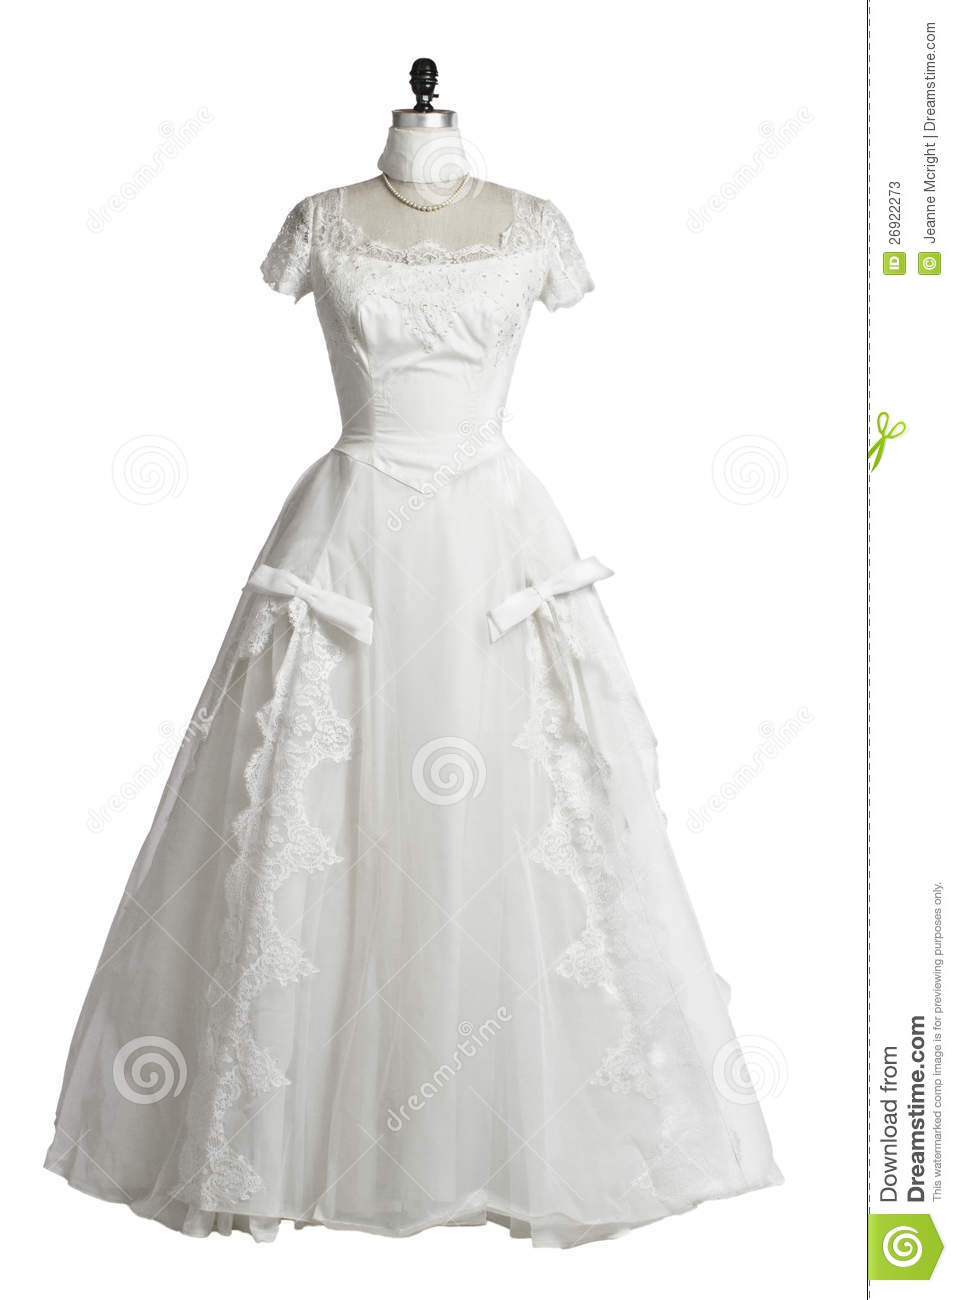 Vintage Wedding Dress 1950s Princess Style Stock Image